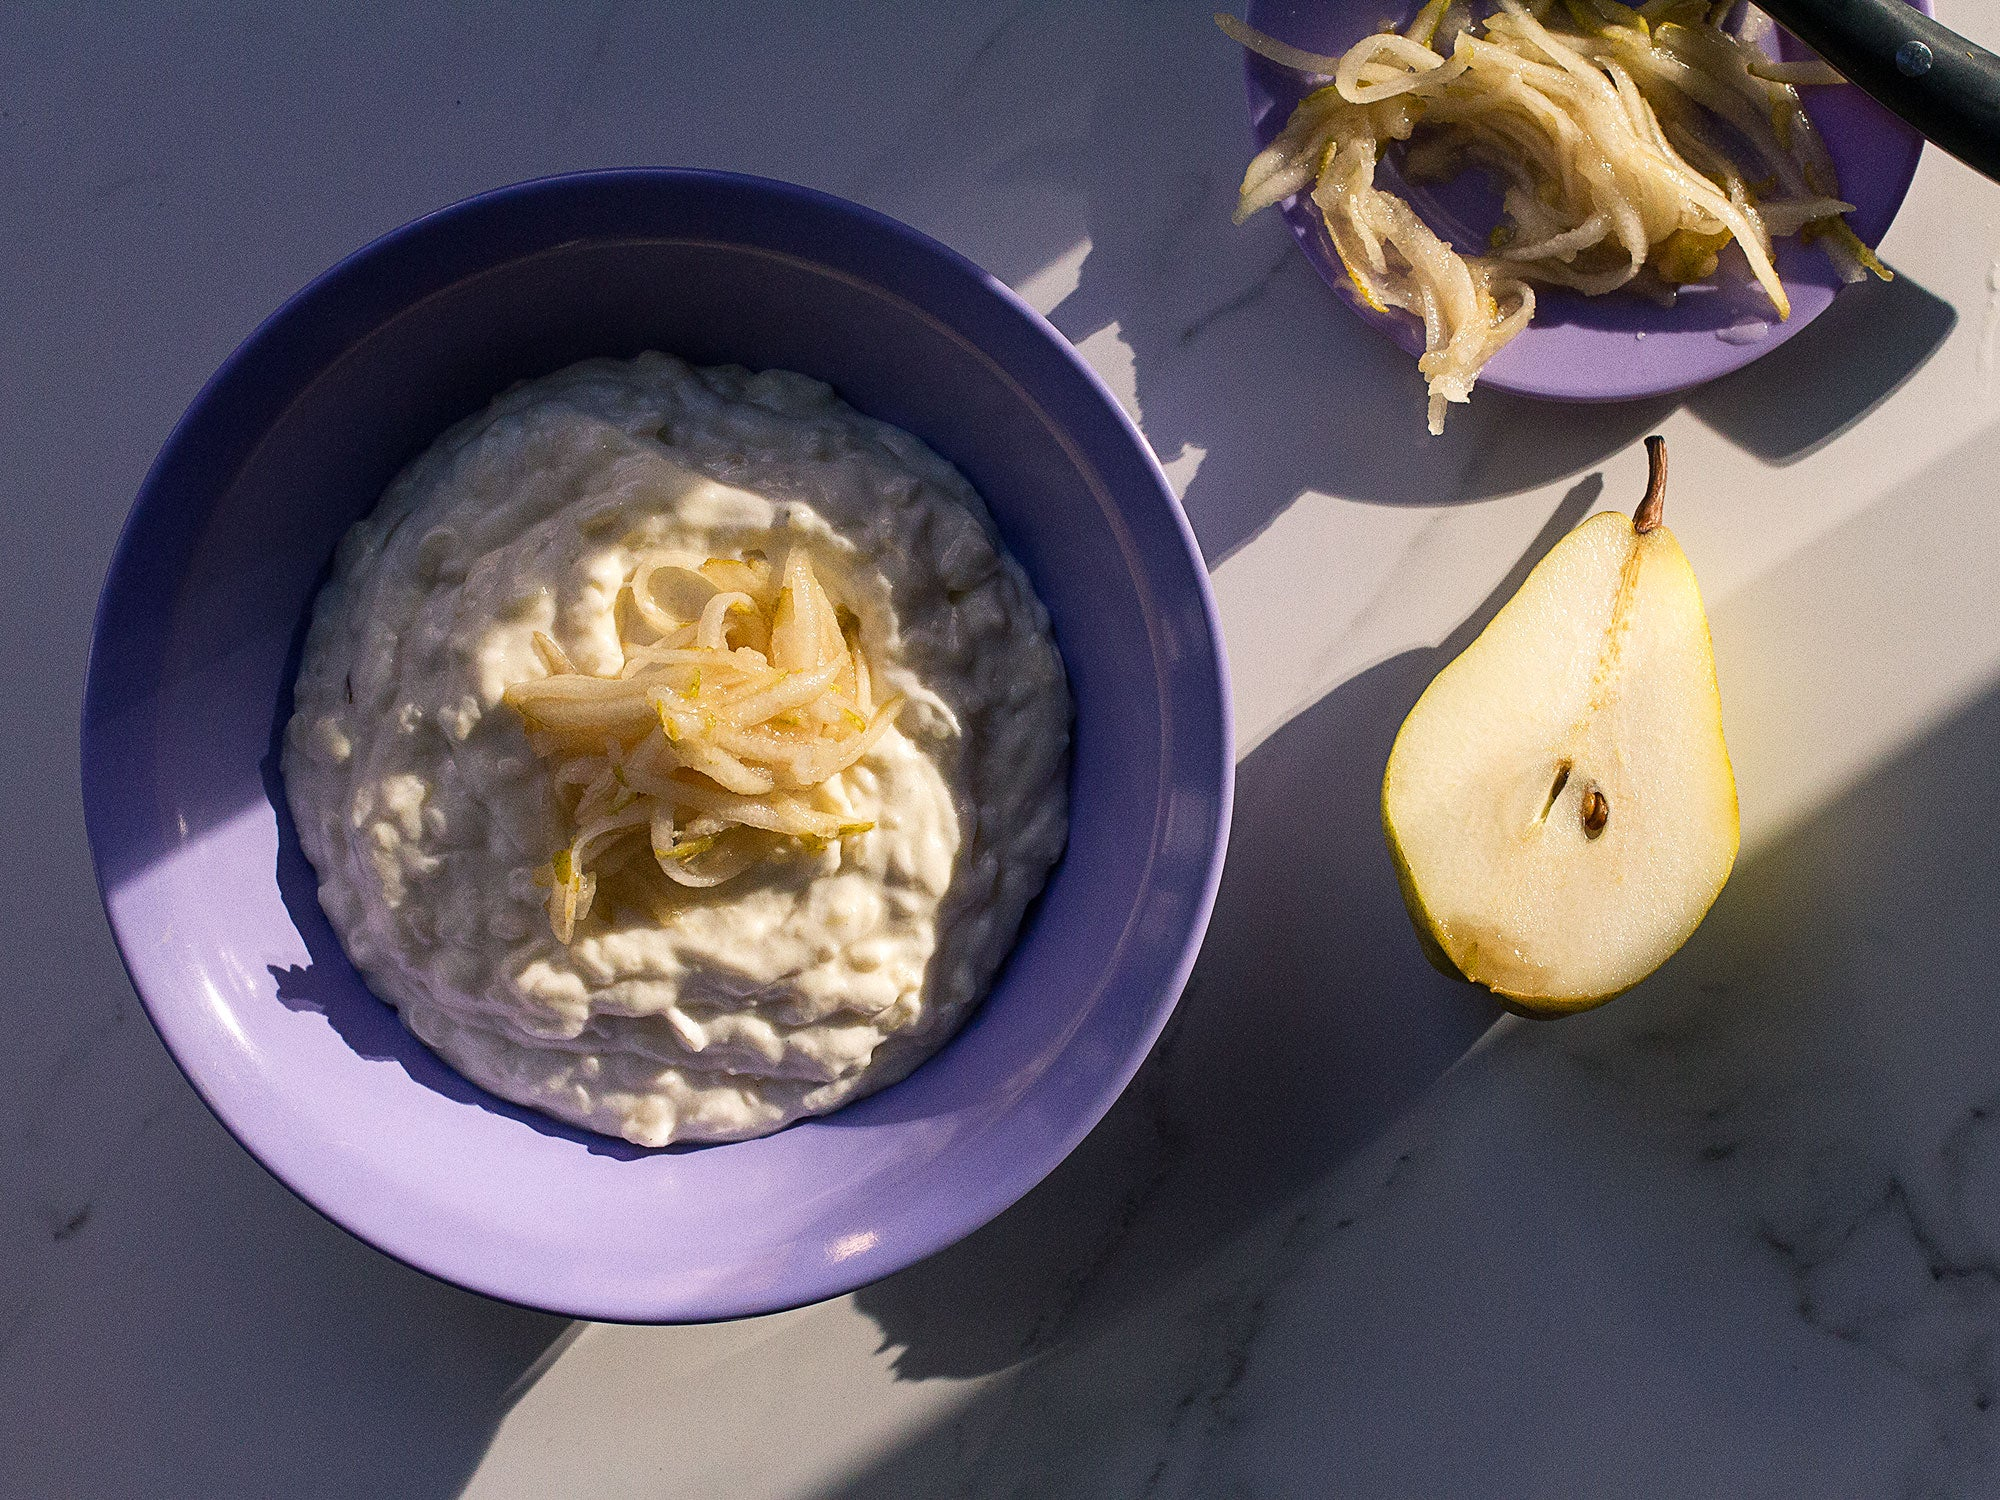 Lavender Rice Pudding with Pears